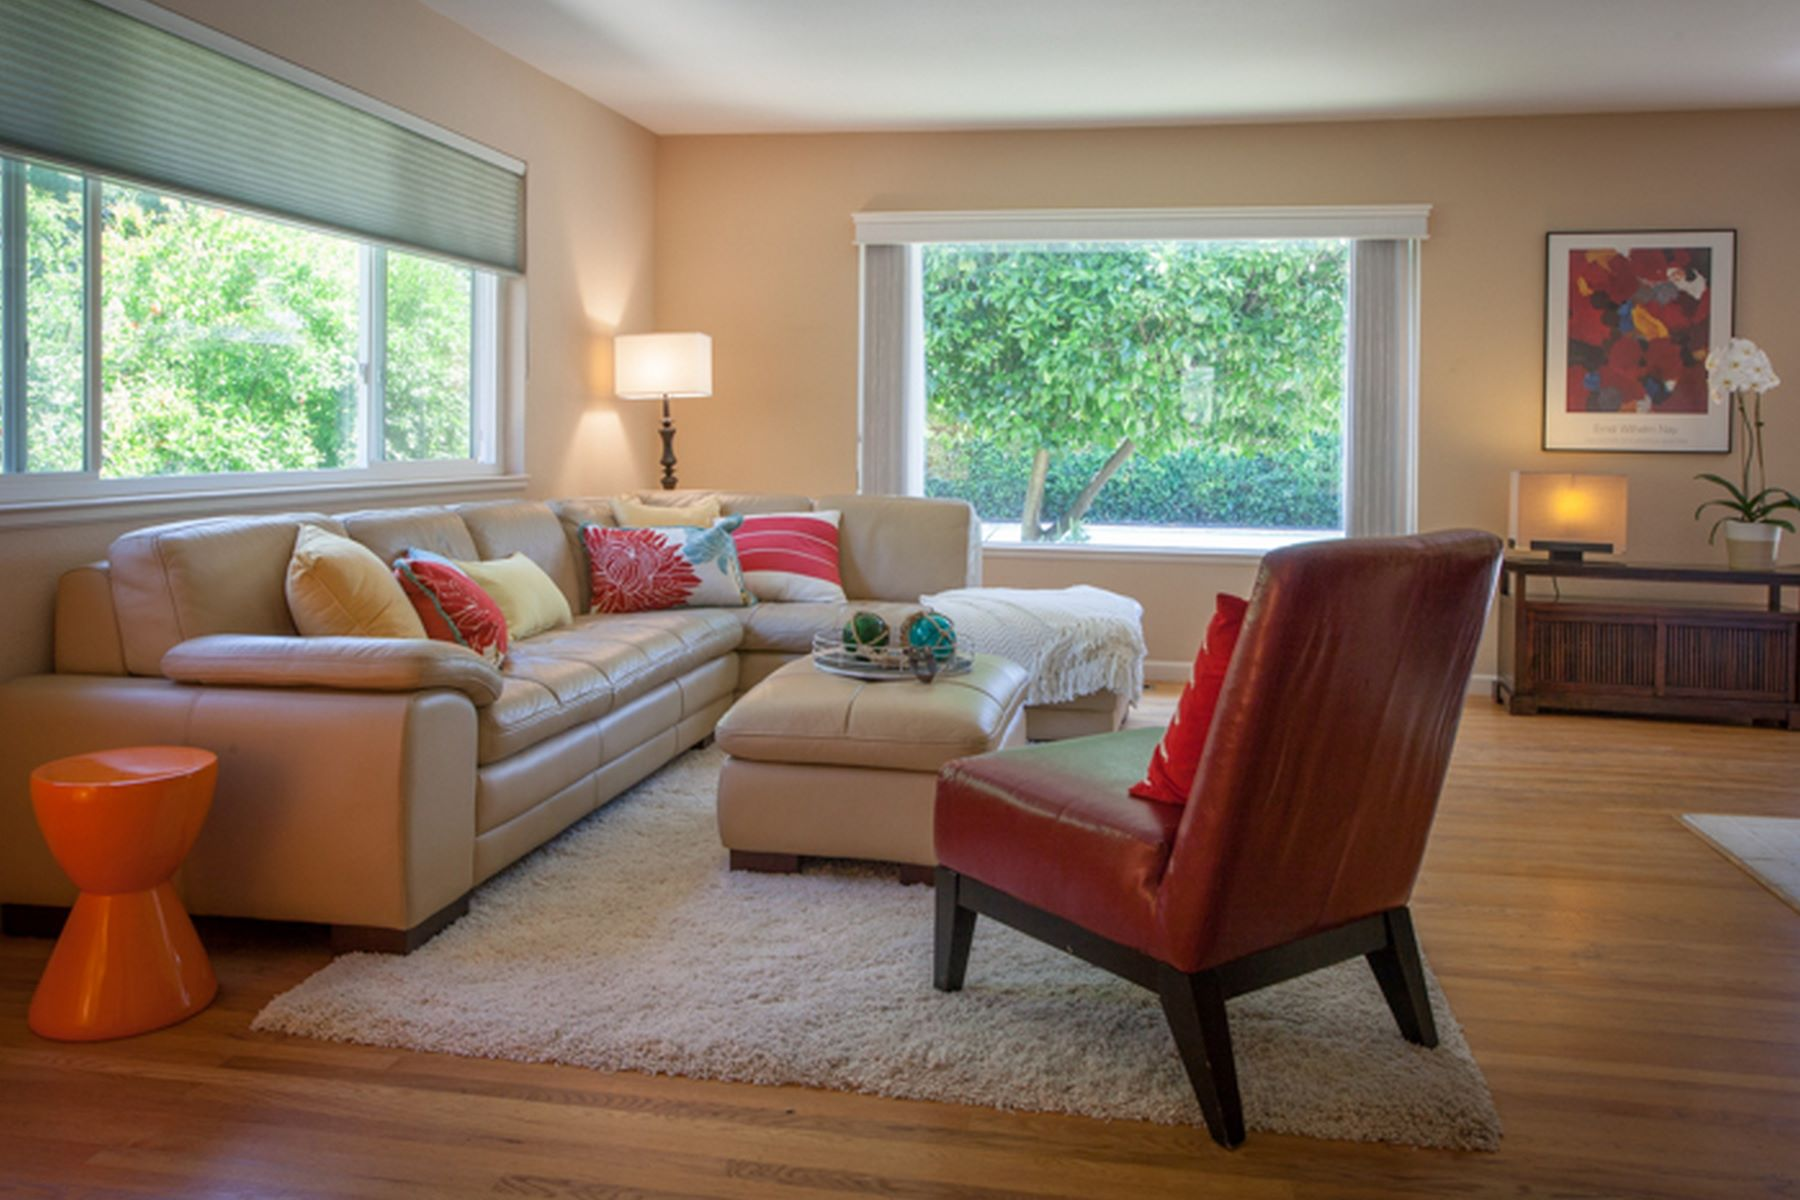 Single Family Home for Sale at Kentfield-Settle In and Enjoy Marin Lifestyle 729 Sir Francis Drake Blvd Kentfield, California 94904 United States